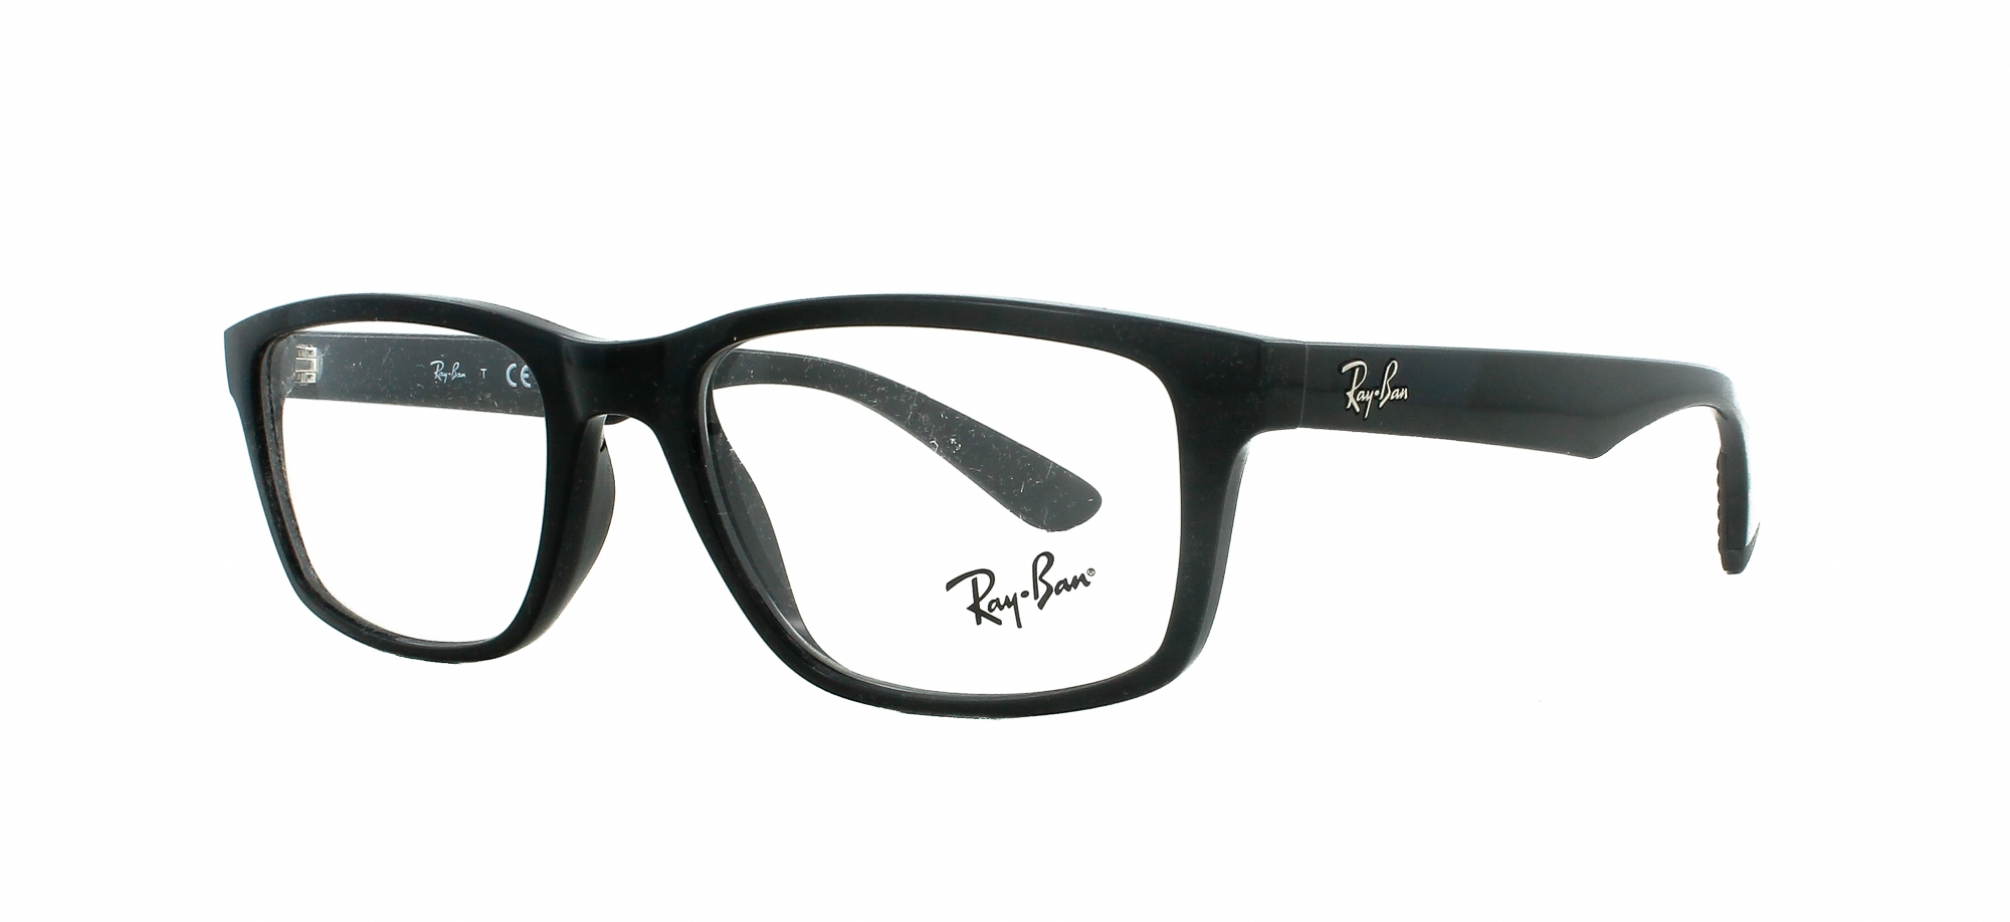 61a202f29a Rayban 5121 Colors « Heritage Malta